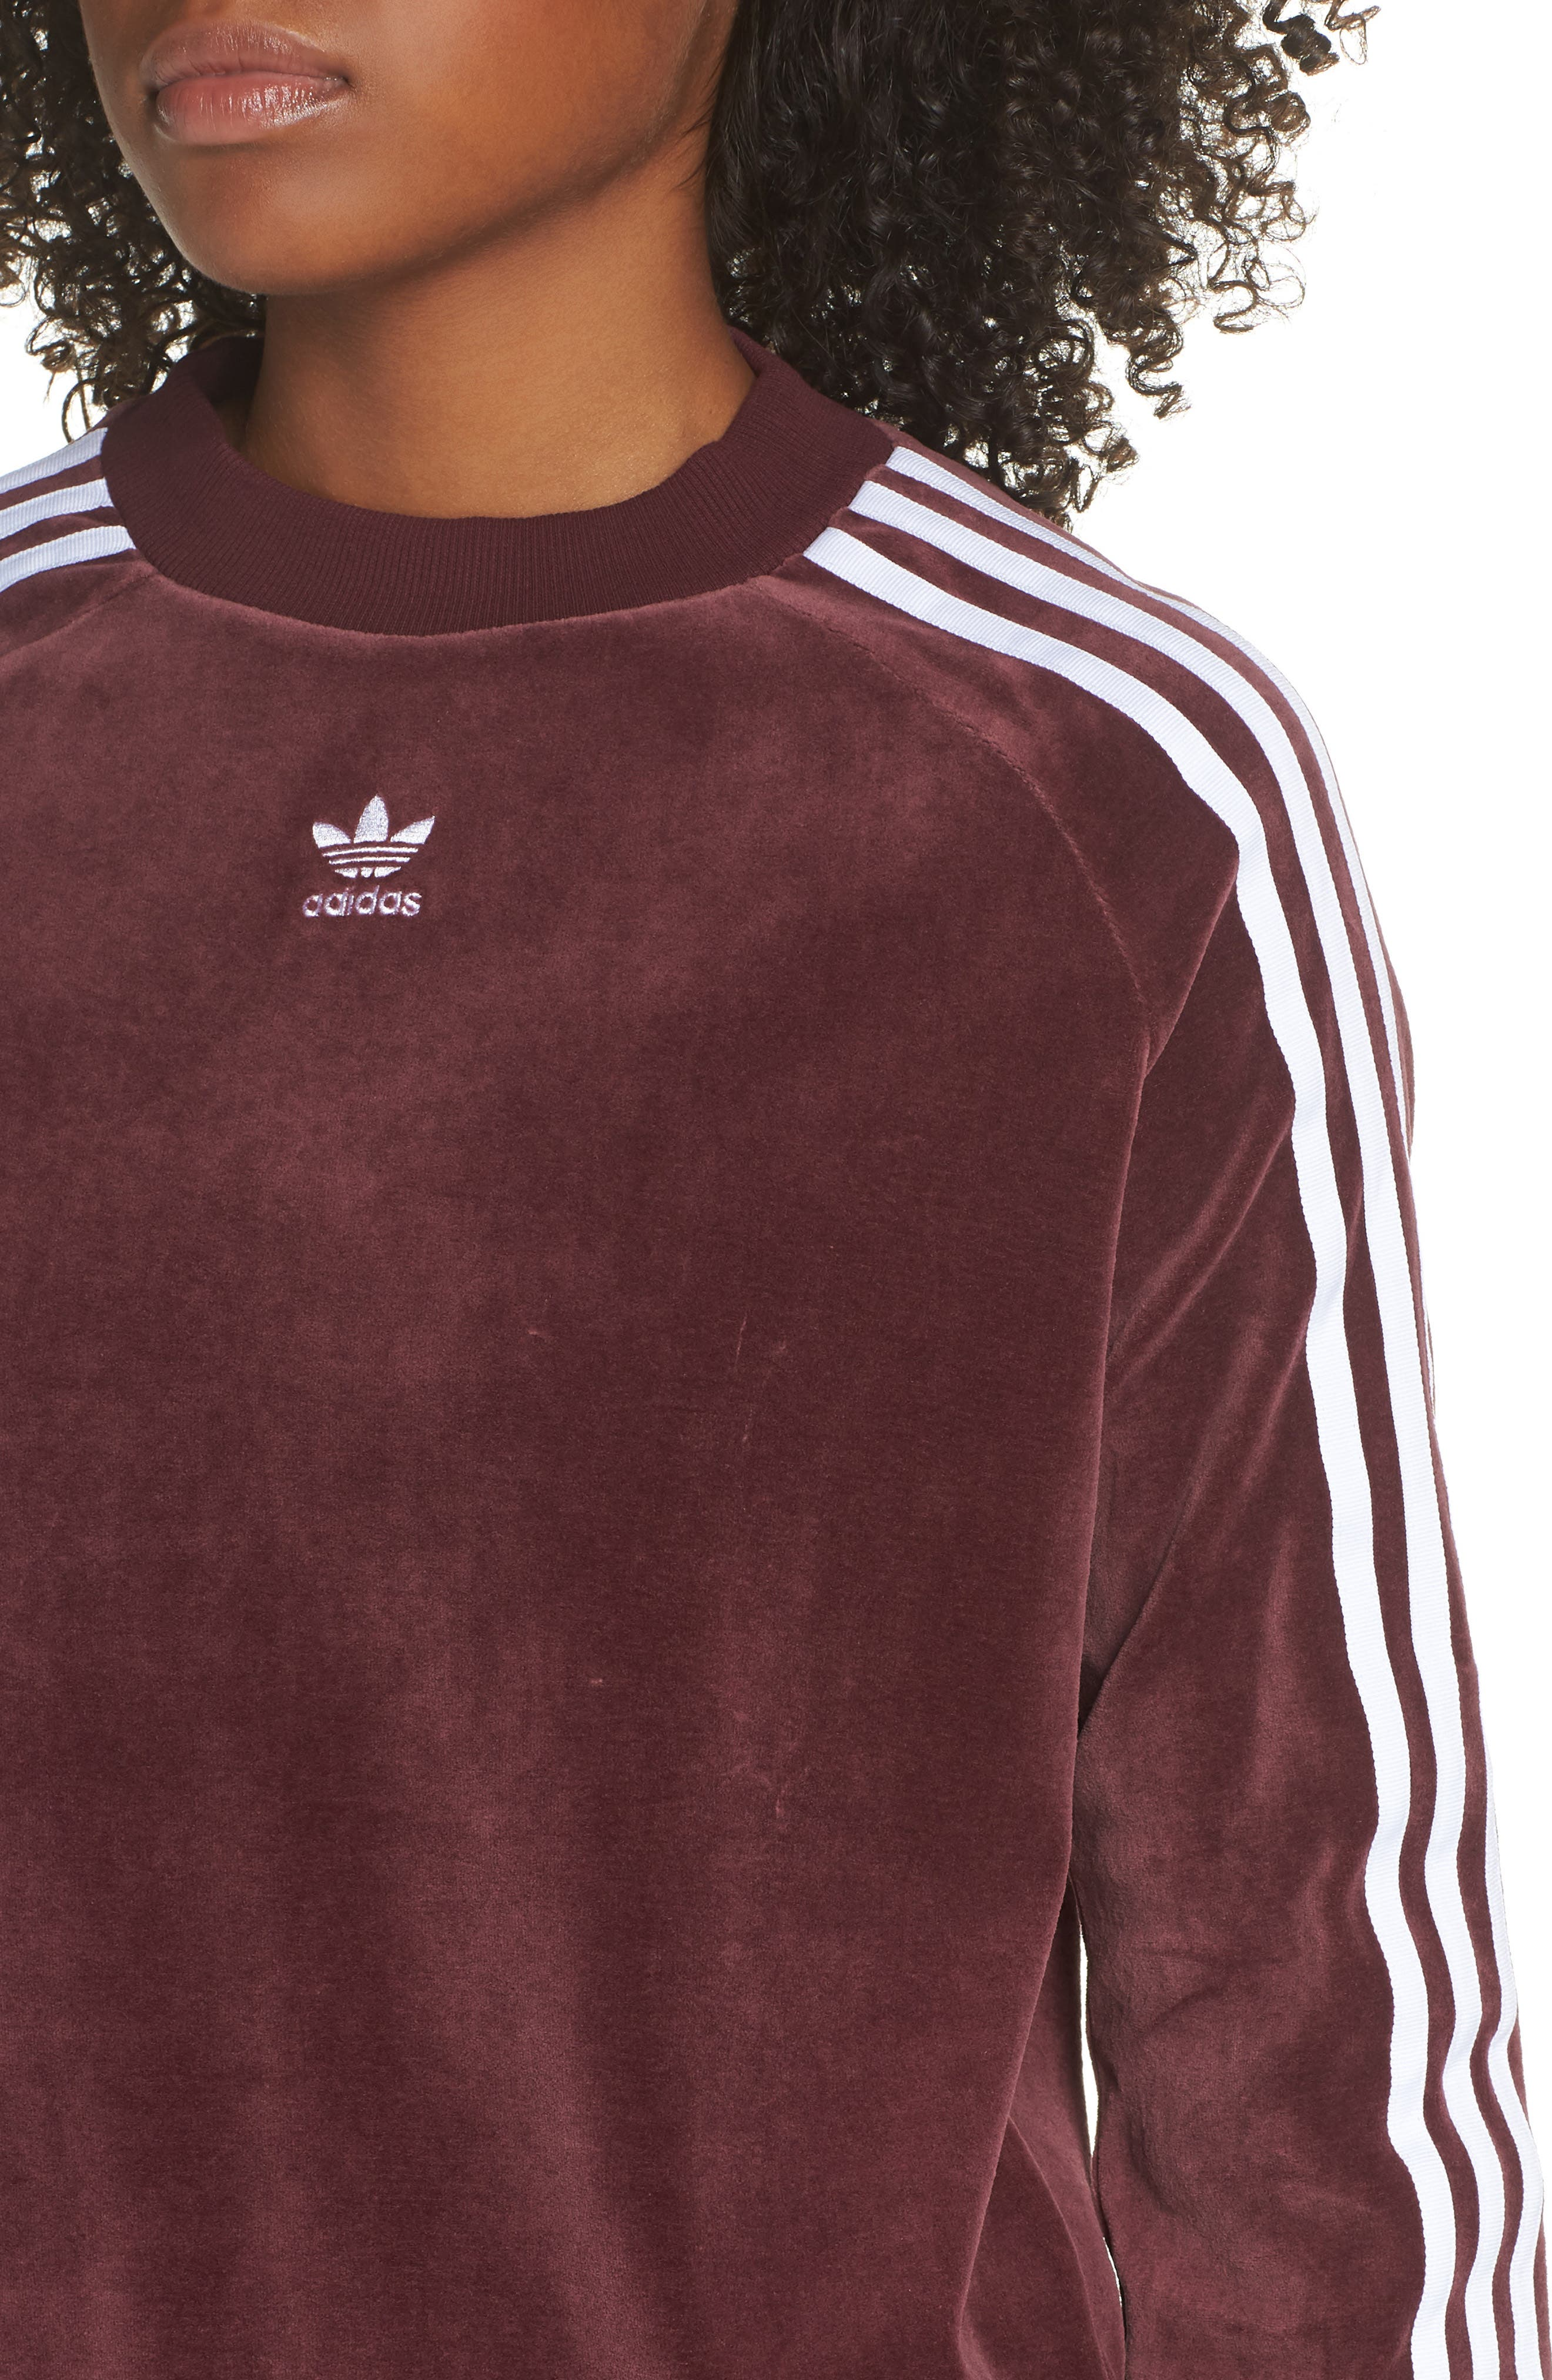 TRF Sweatshirt,                             Alternate thumbnail 4, color,                             MAROON